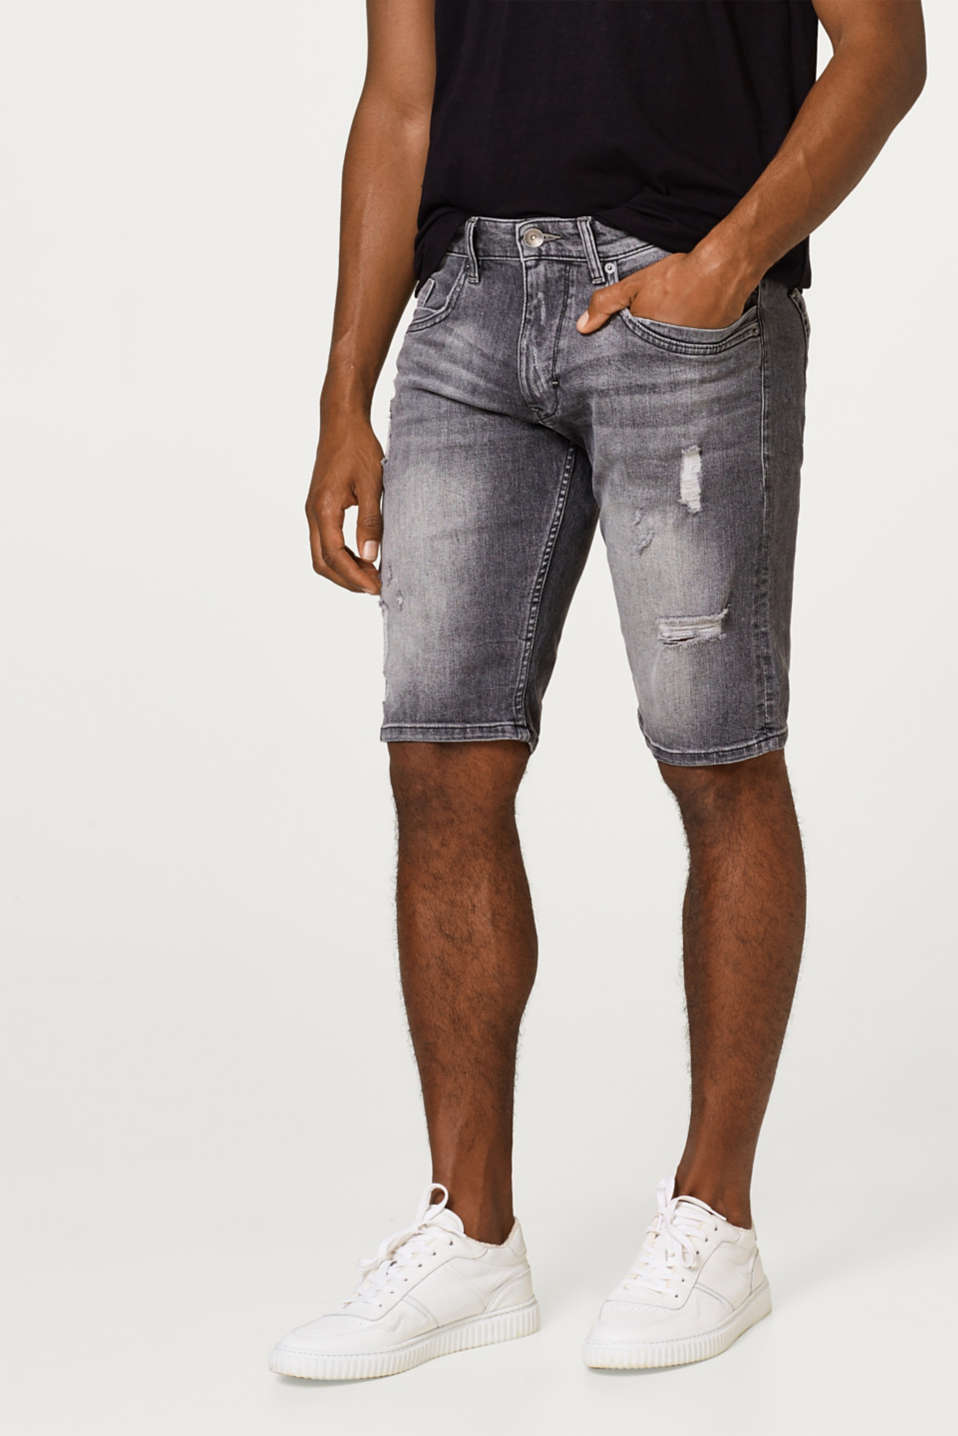 Esprit - Short en jean stretch à effets destroy